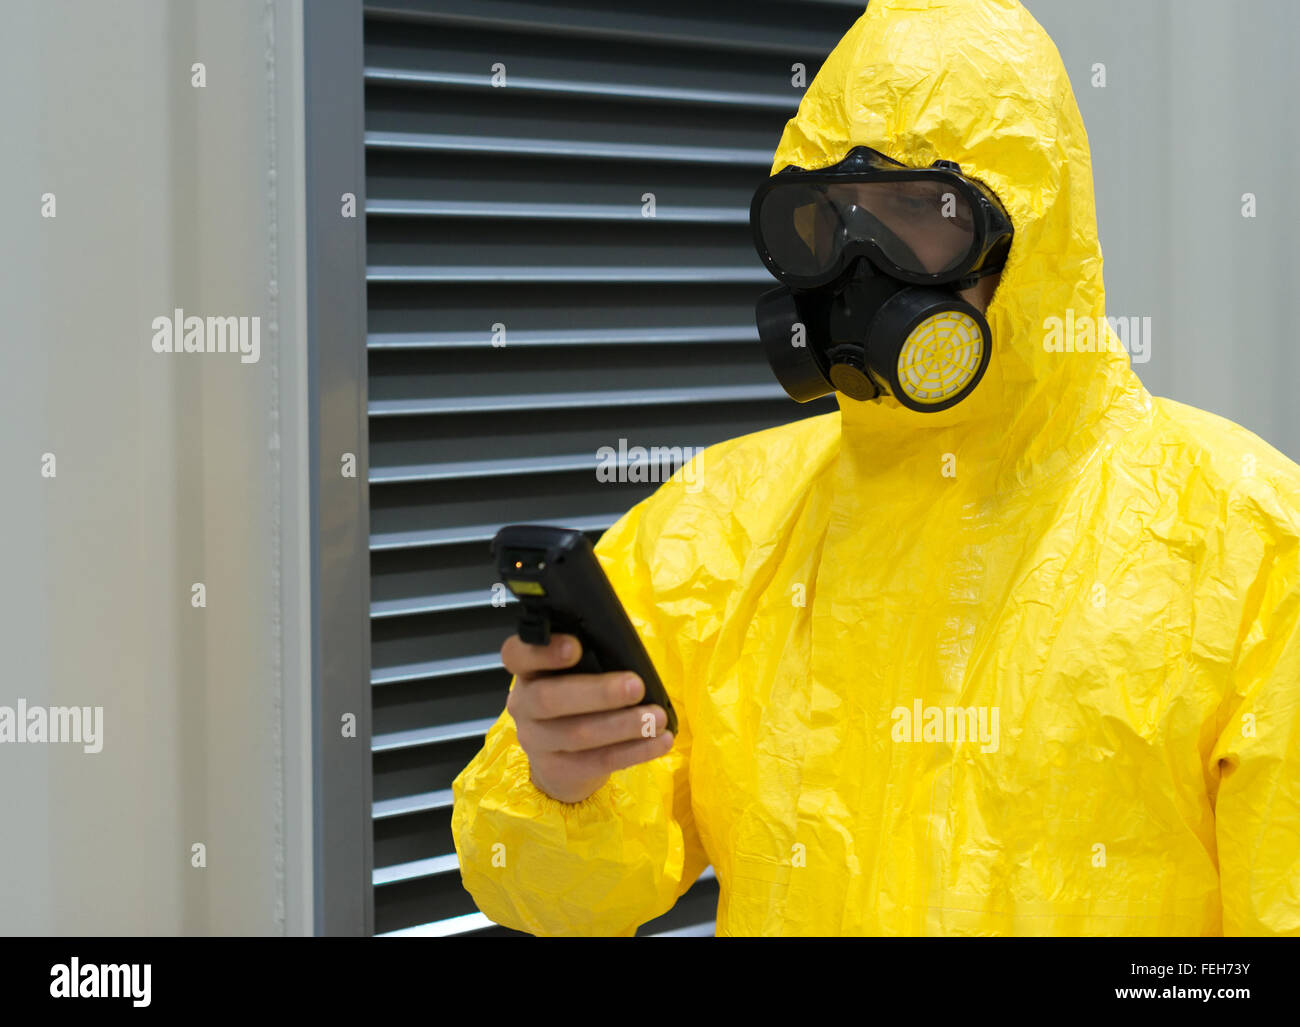 Worker in protective chemical suit checking radiation with geiger counter. - Stock Image